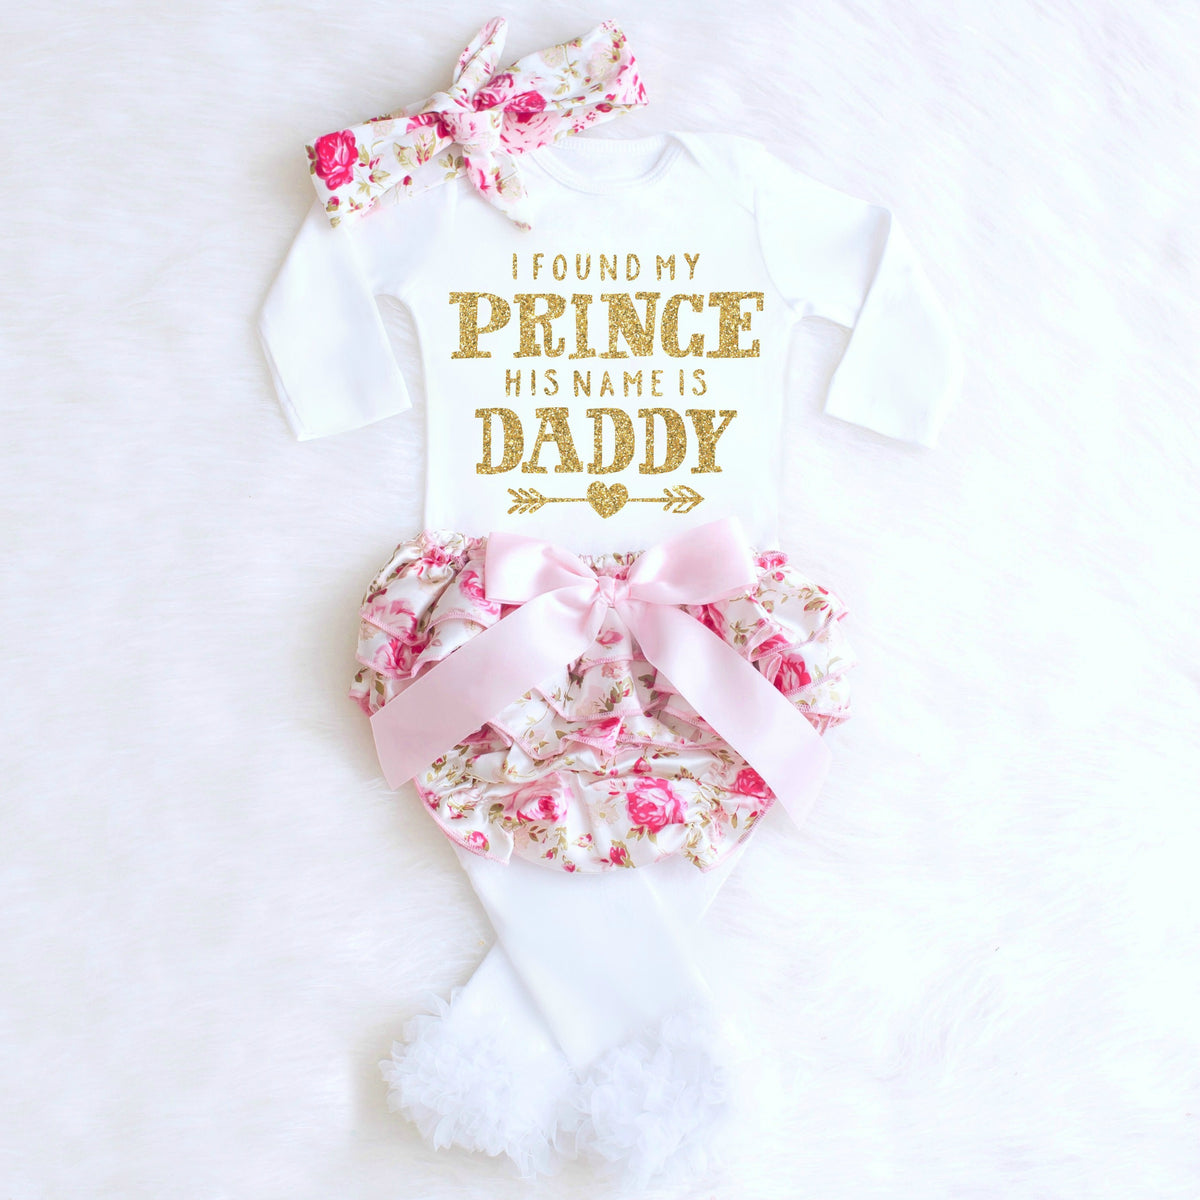 9ceaee922 Baby Girl 1st Father's Day Onesie Outfit. $17.99. I FOUND MY PRINCE HIS  NAME IS DADDY ONESIE I FOUND MY PRINCE HIS NAME IS DADDY ONESIE